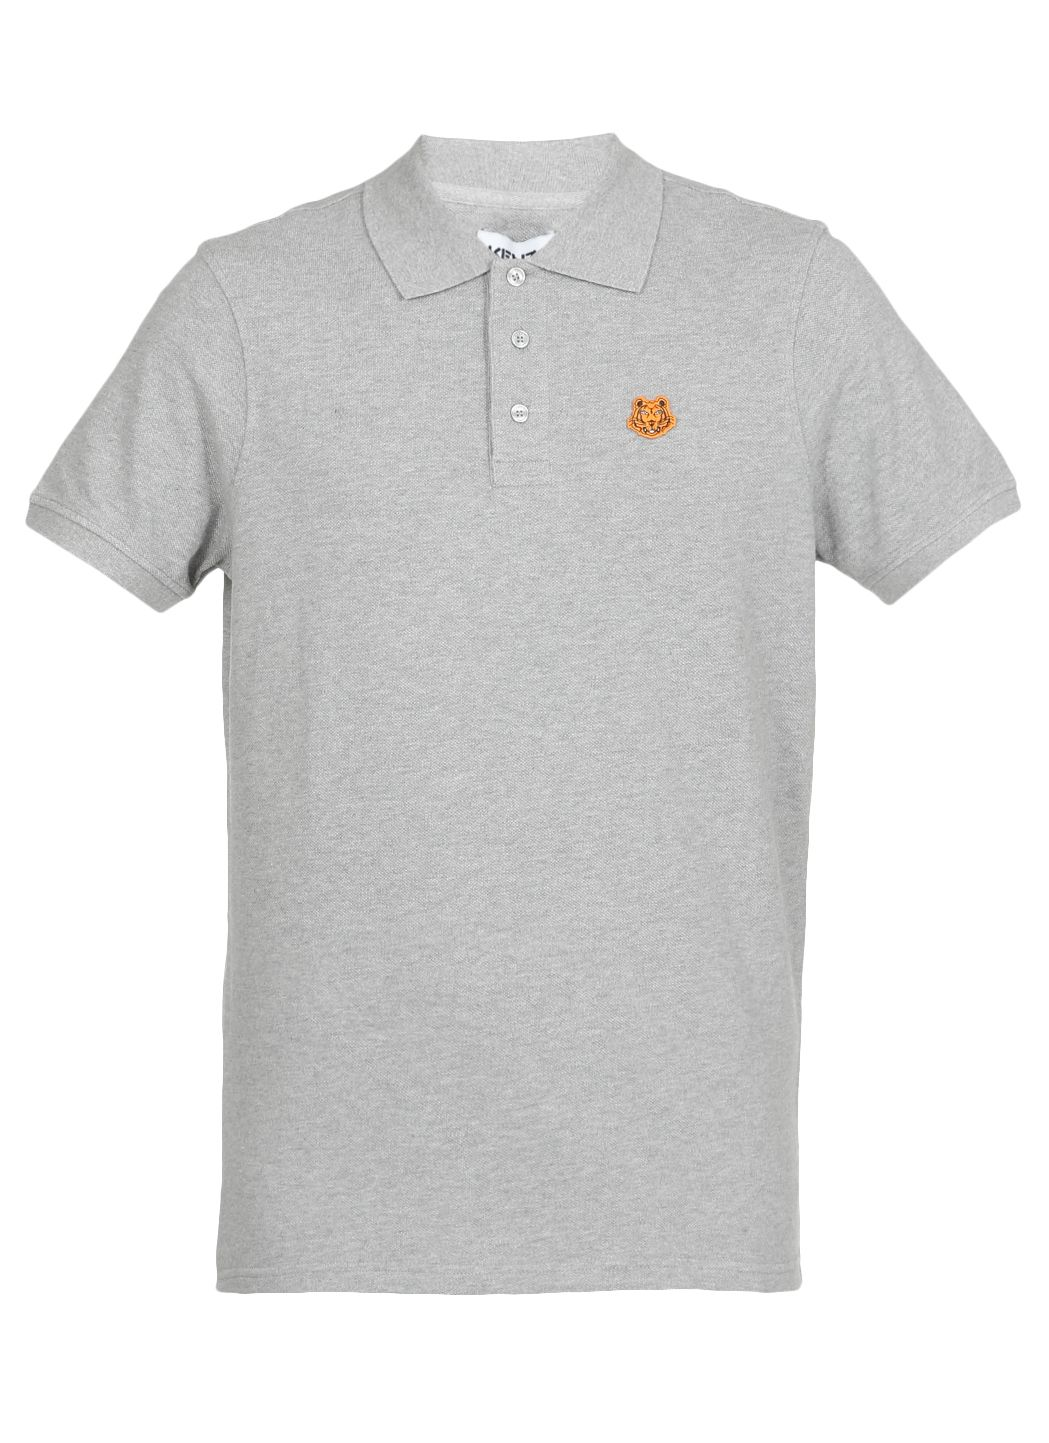 Tiger crest polo